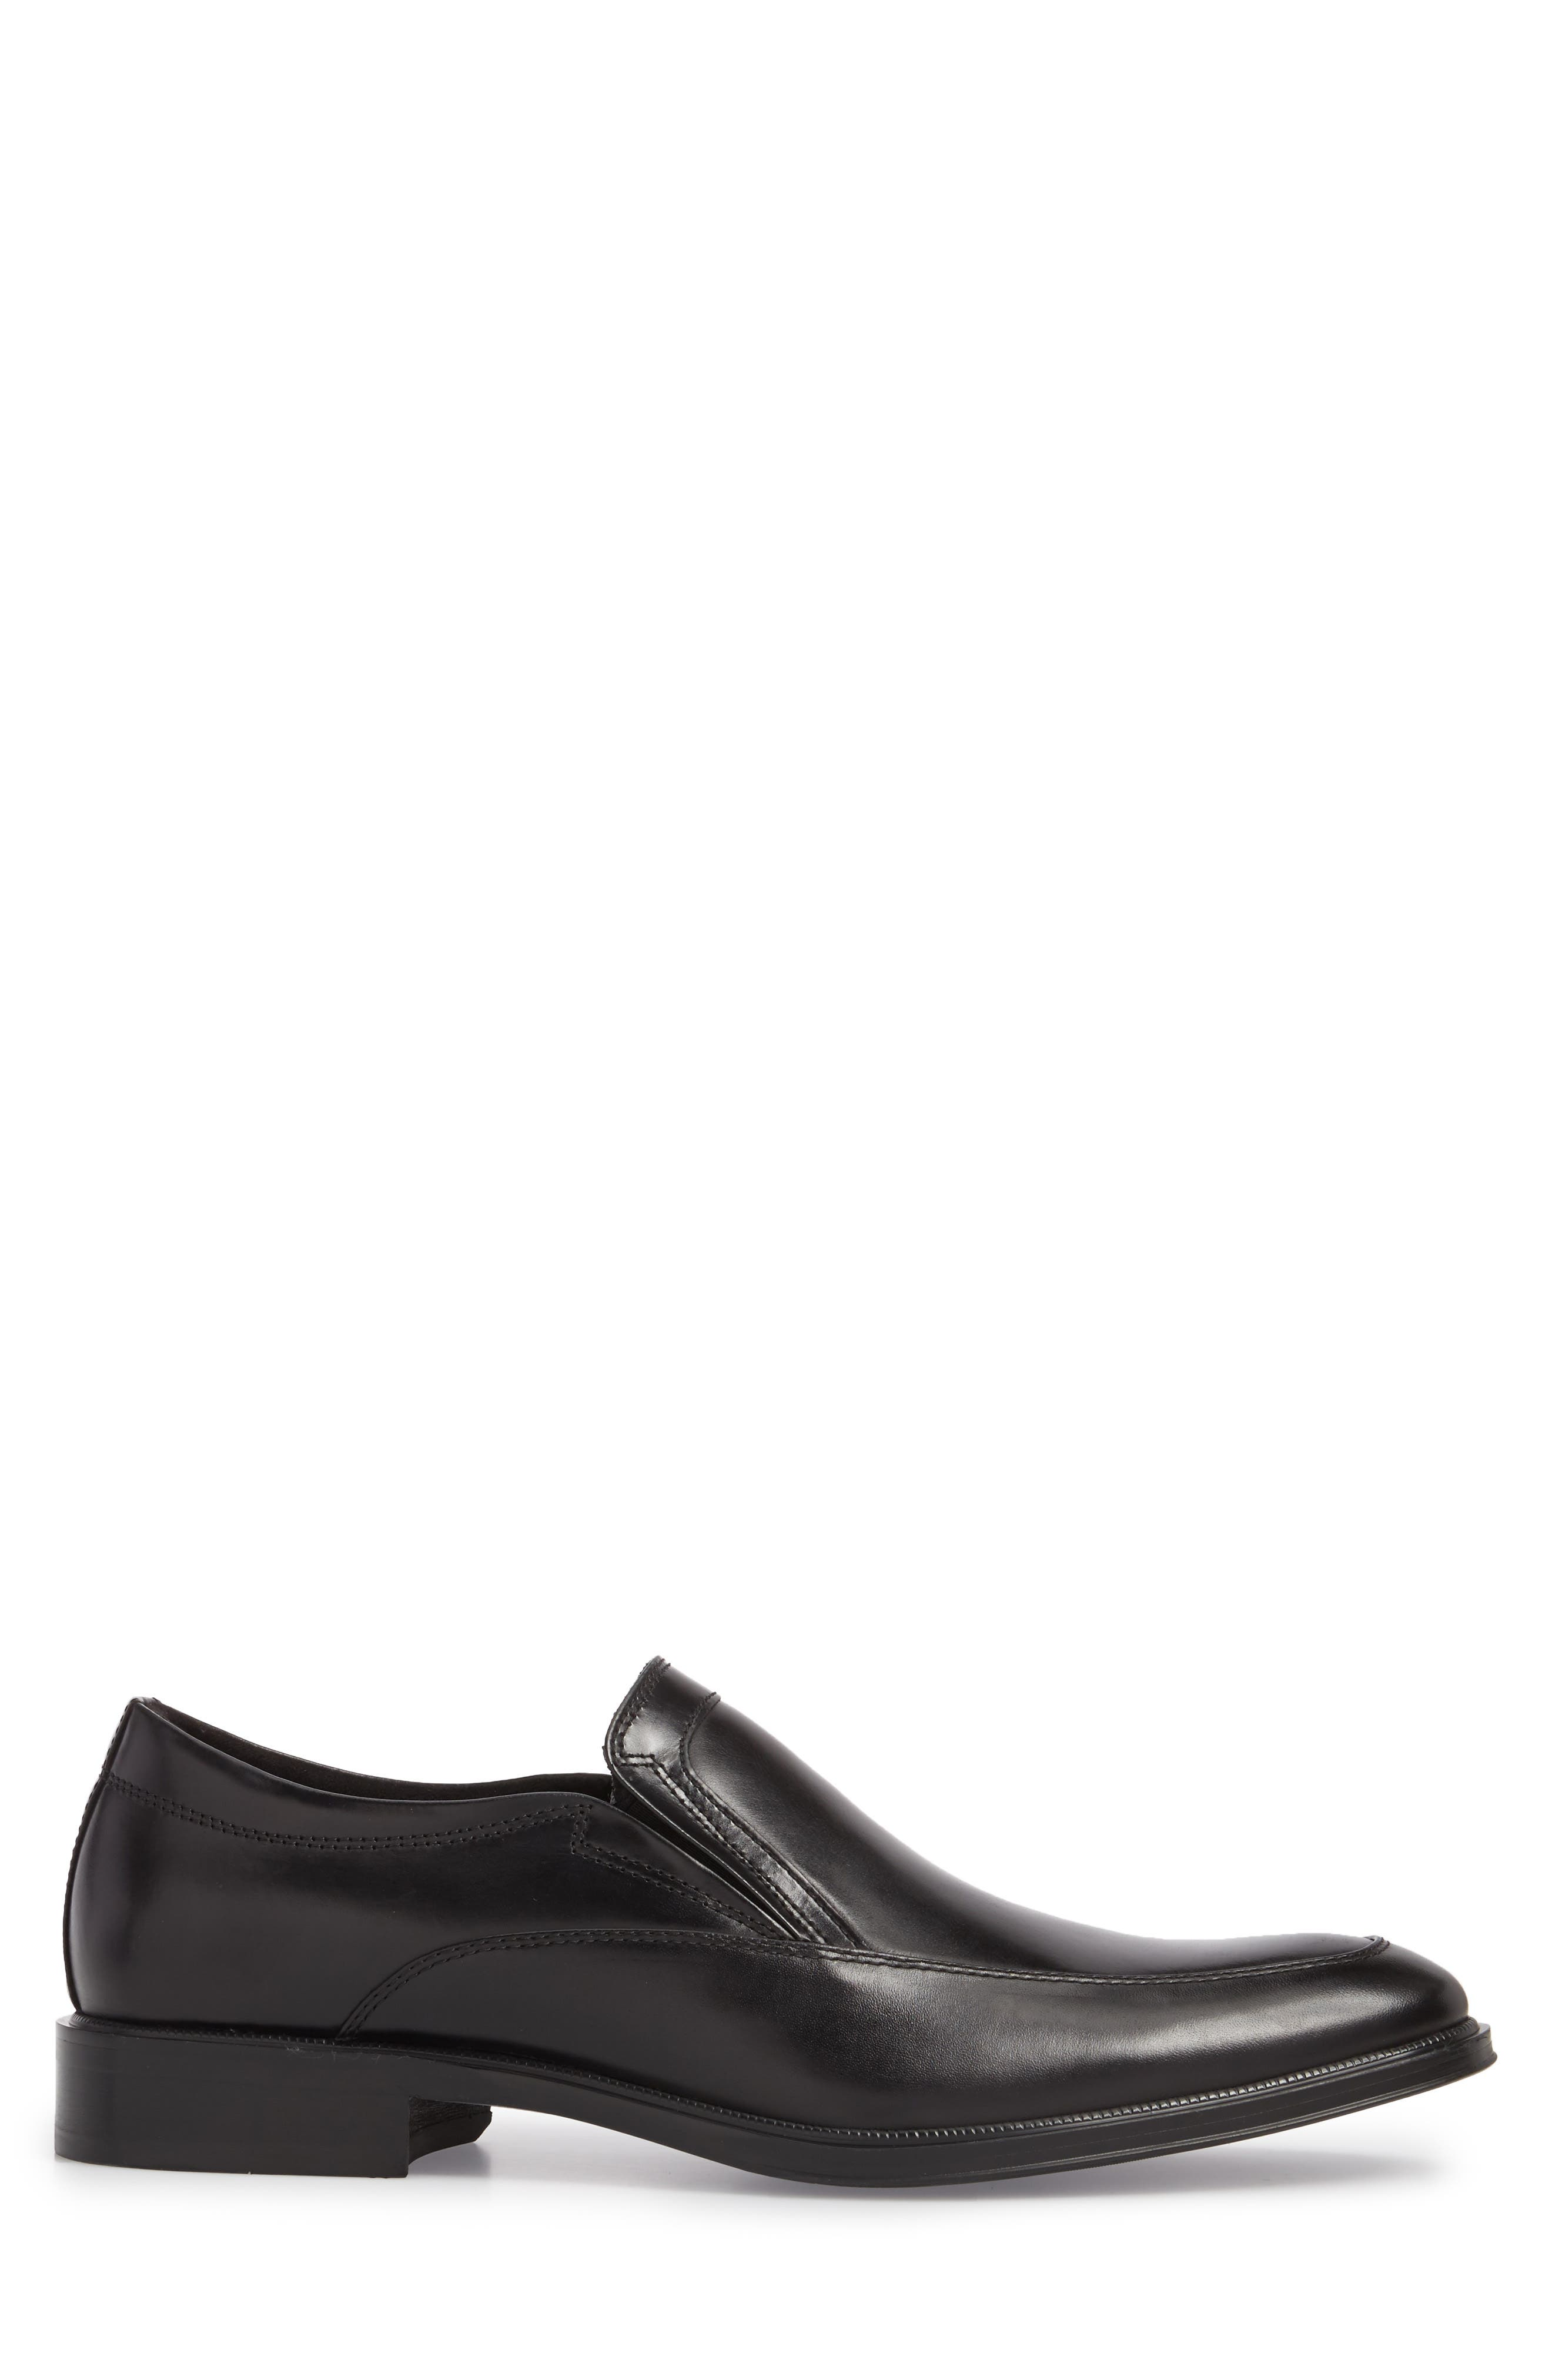 KENNETH COLE NEW YORK,                             Tully Venetian Loafer,                             Alternate thumbnail 3, color,                             BLACK LEATHER